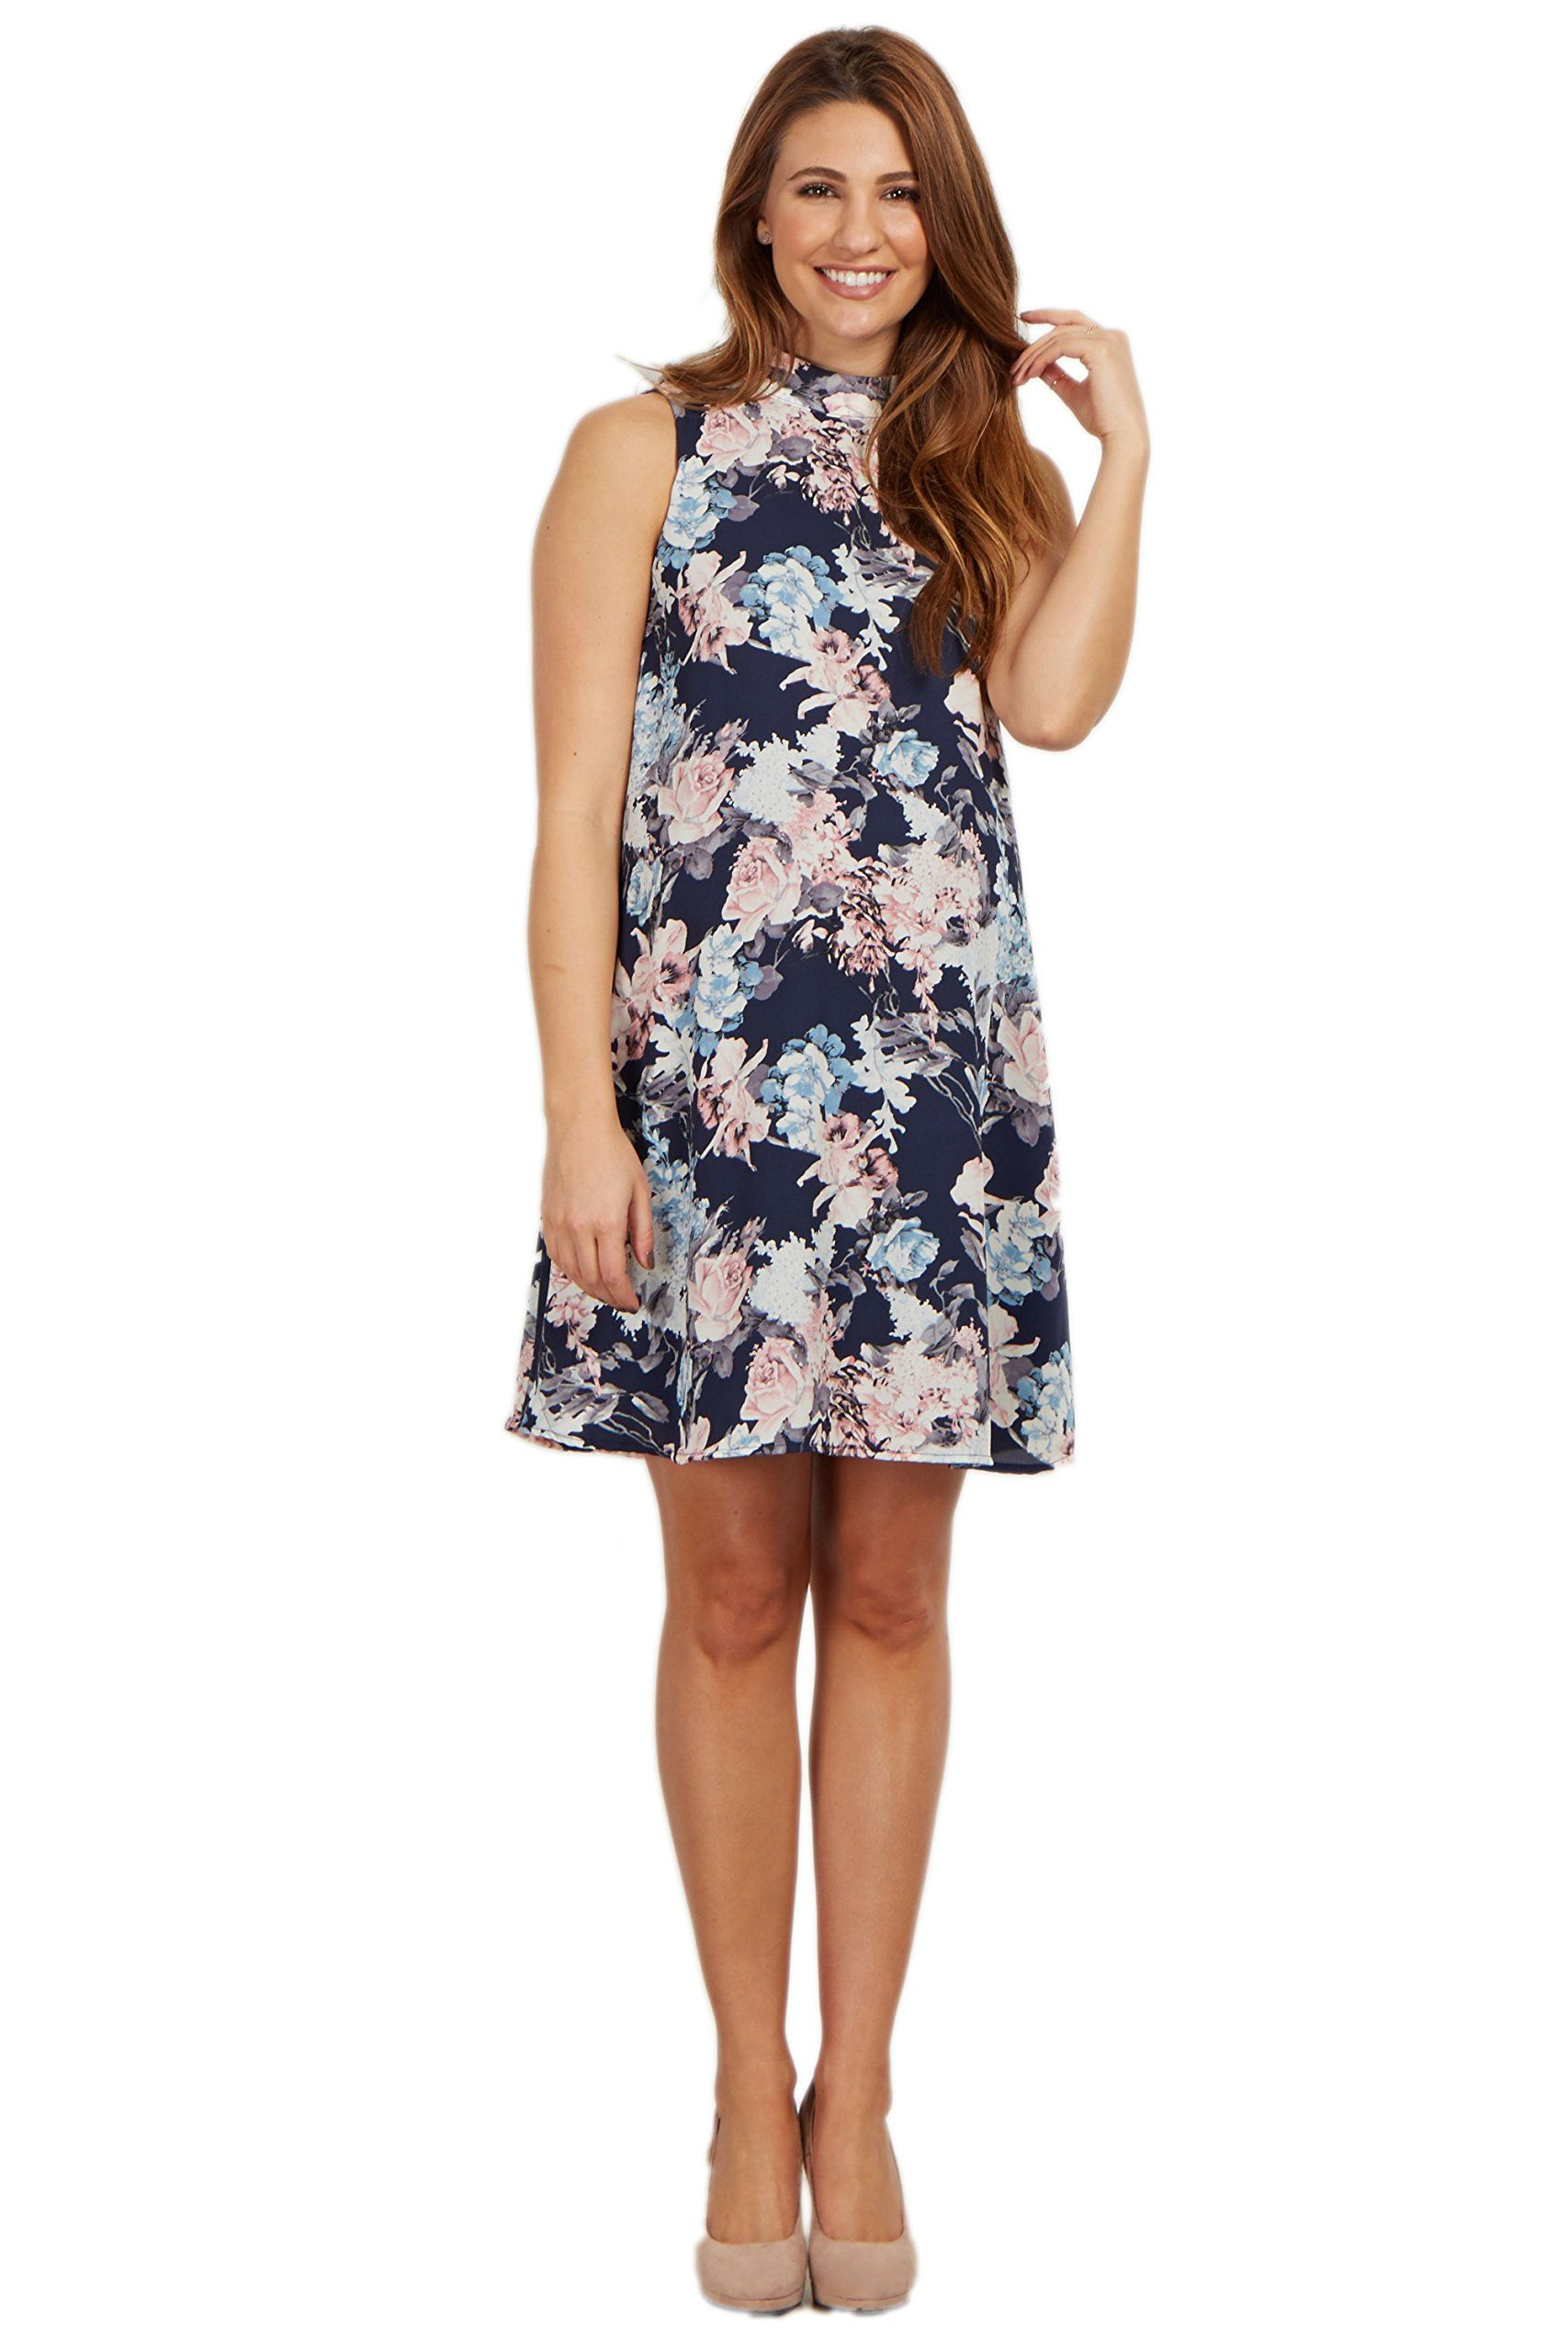 010b0422cee2b Maternity Dresses - PinkBlush Maternity Navy Floral Mock Neck Sleeveless  Dress XL *** You can get more details by clicking on the picture.